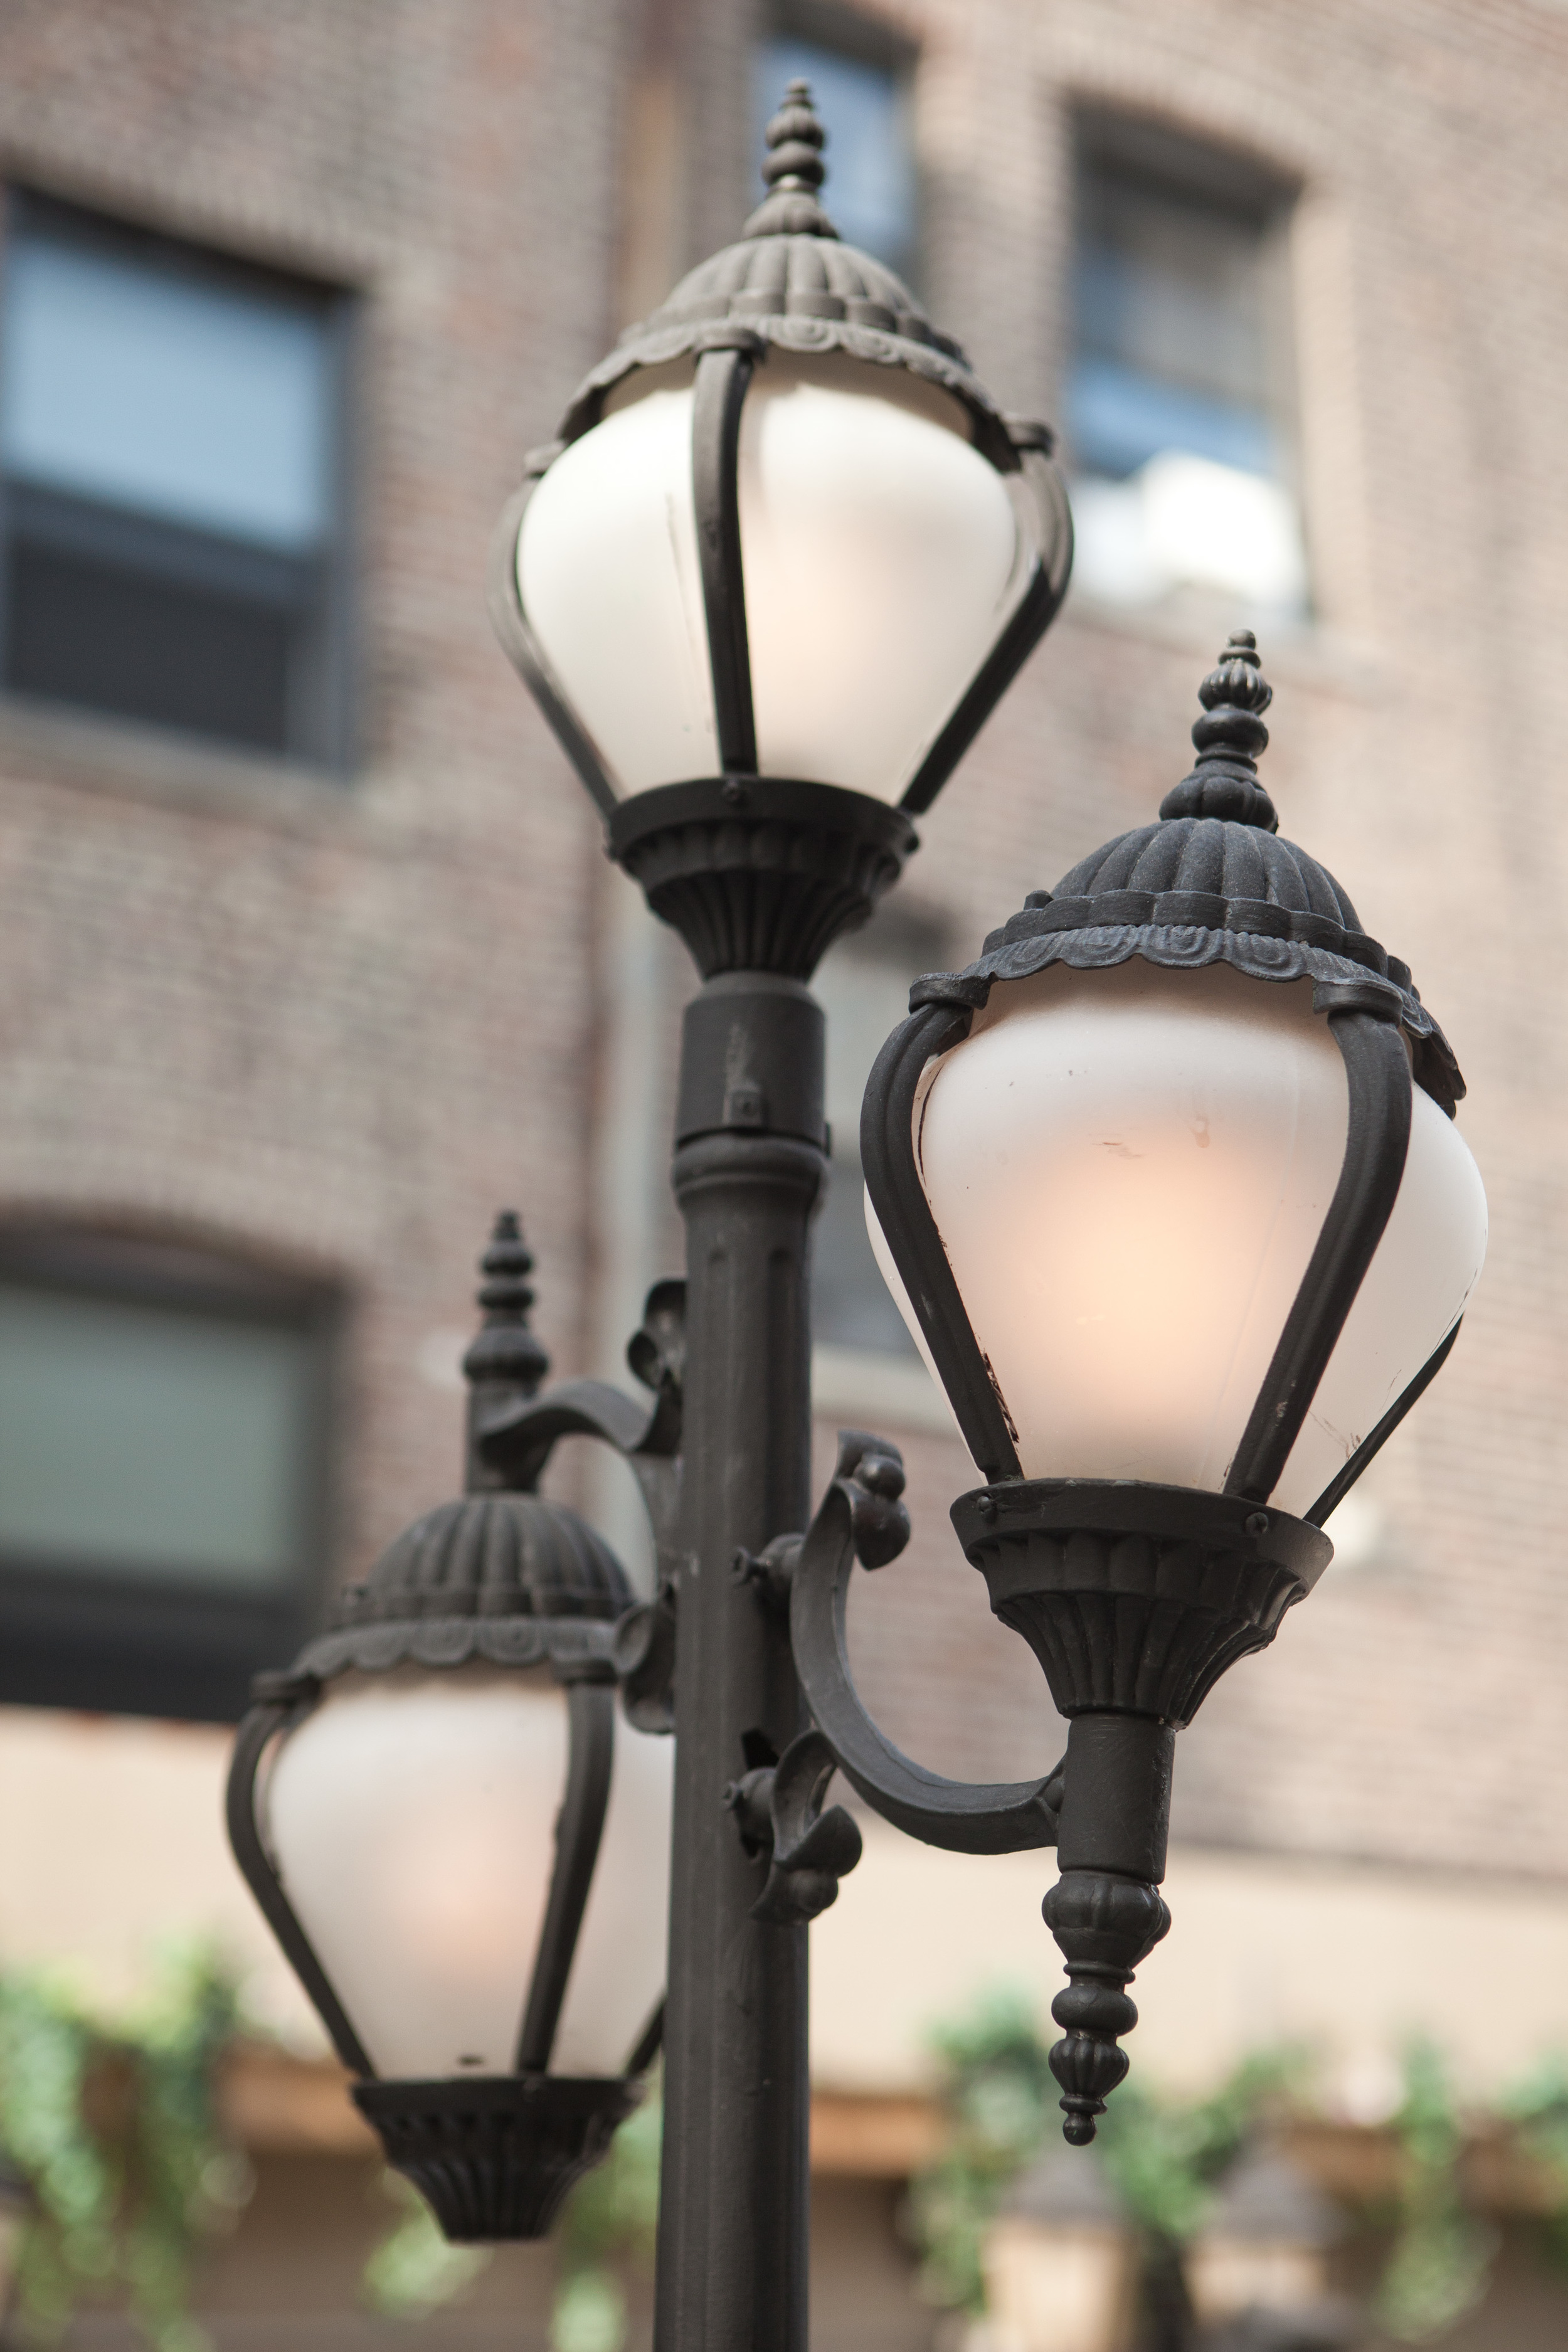 Loved the light fixtures....